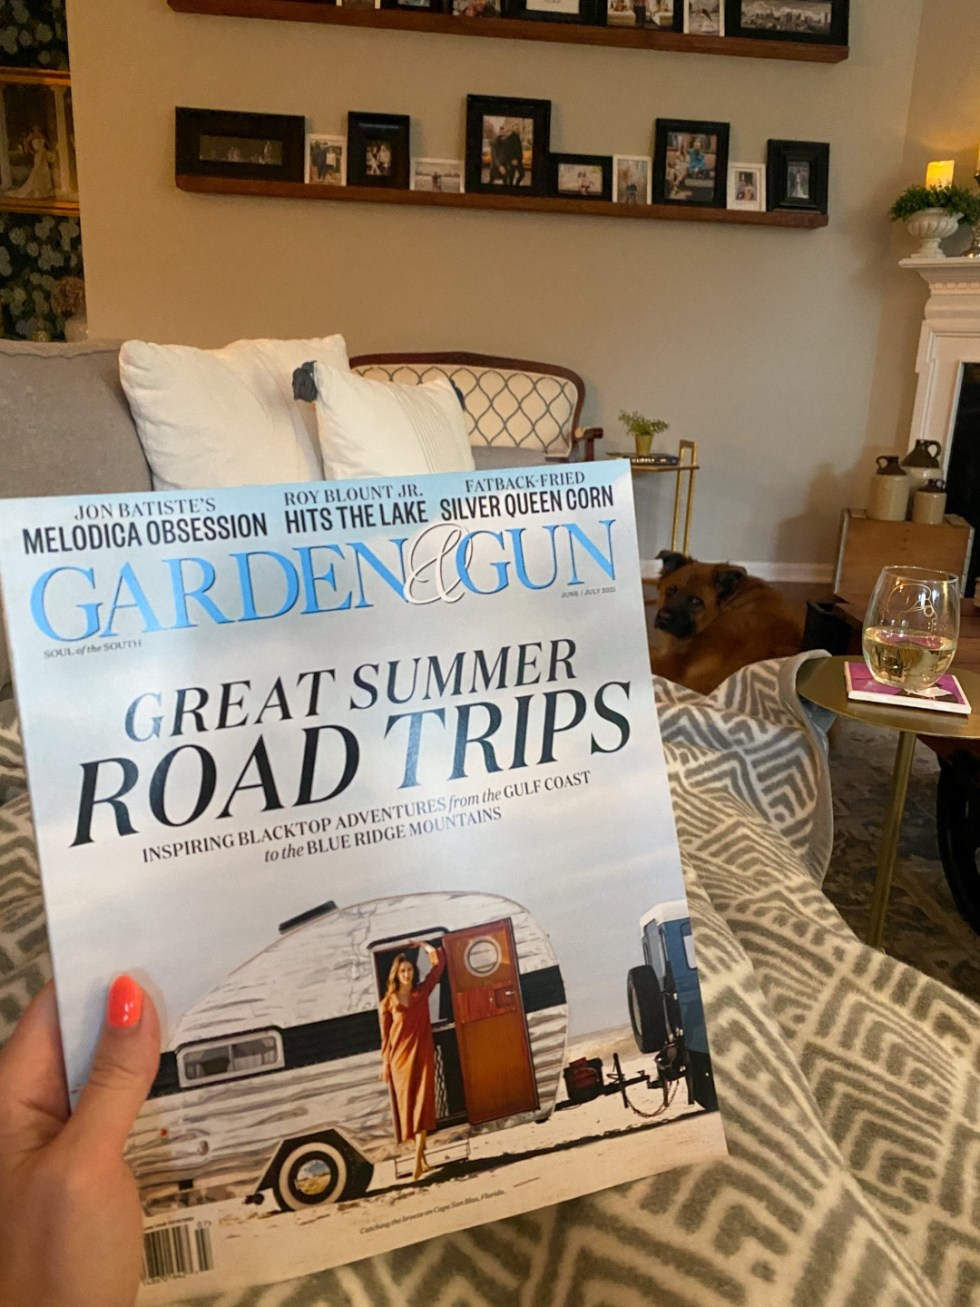 Recent Favorites: Top 10 Things I've Bought that Are Worth the Hype - I'm Fixin' To - @imfixintoblog | Recent Favorites by popular NC life and style blog, I'm Fixin' To: image of a woman holding a Garden and Gun magazine.